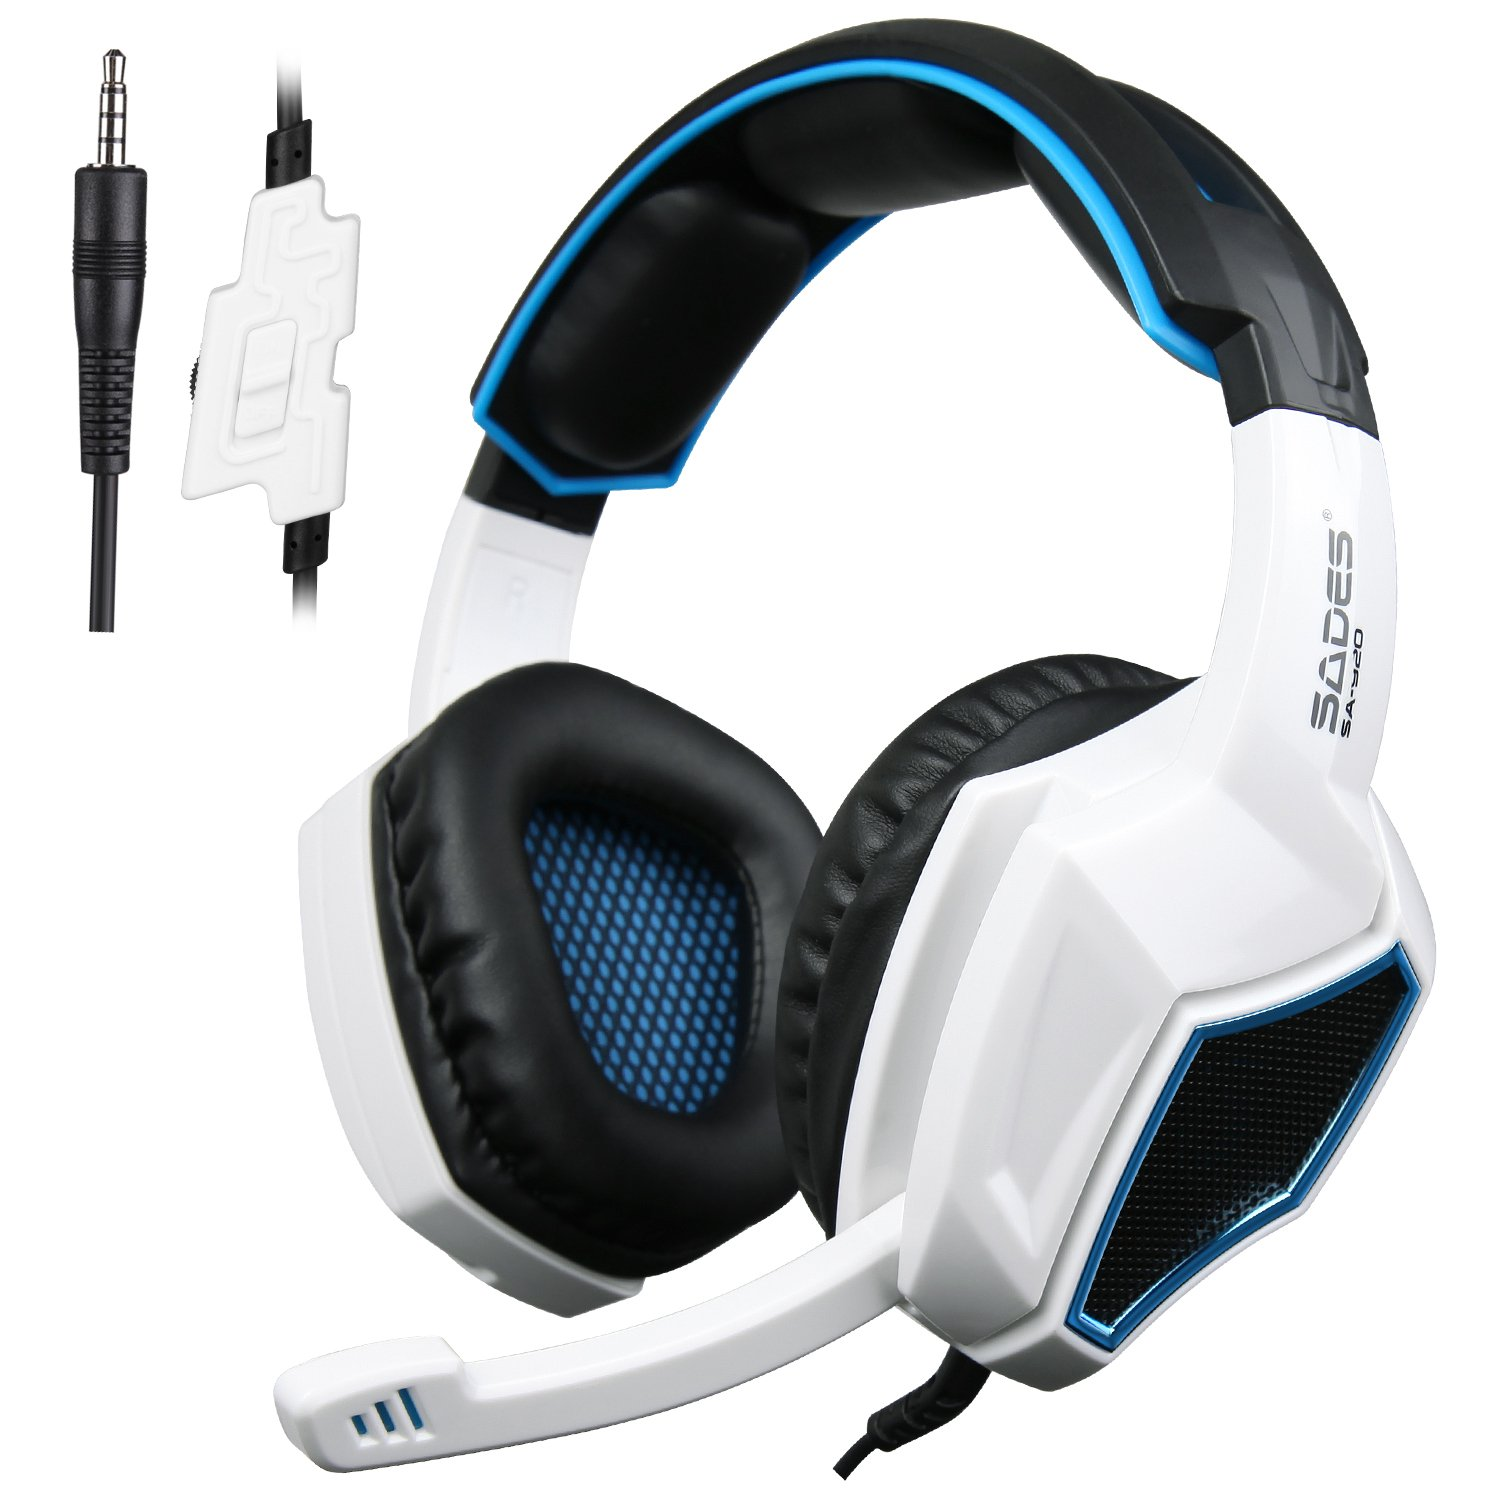 PS4 Gaming Headset, SADES SA920 3.5mm Wired Stereo Gaming Headphones with Microphone for PC iOS Computer Gamers Smart Phones Mobiles White Black